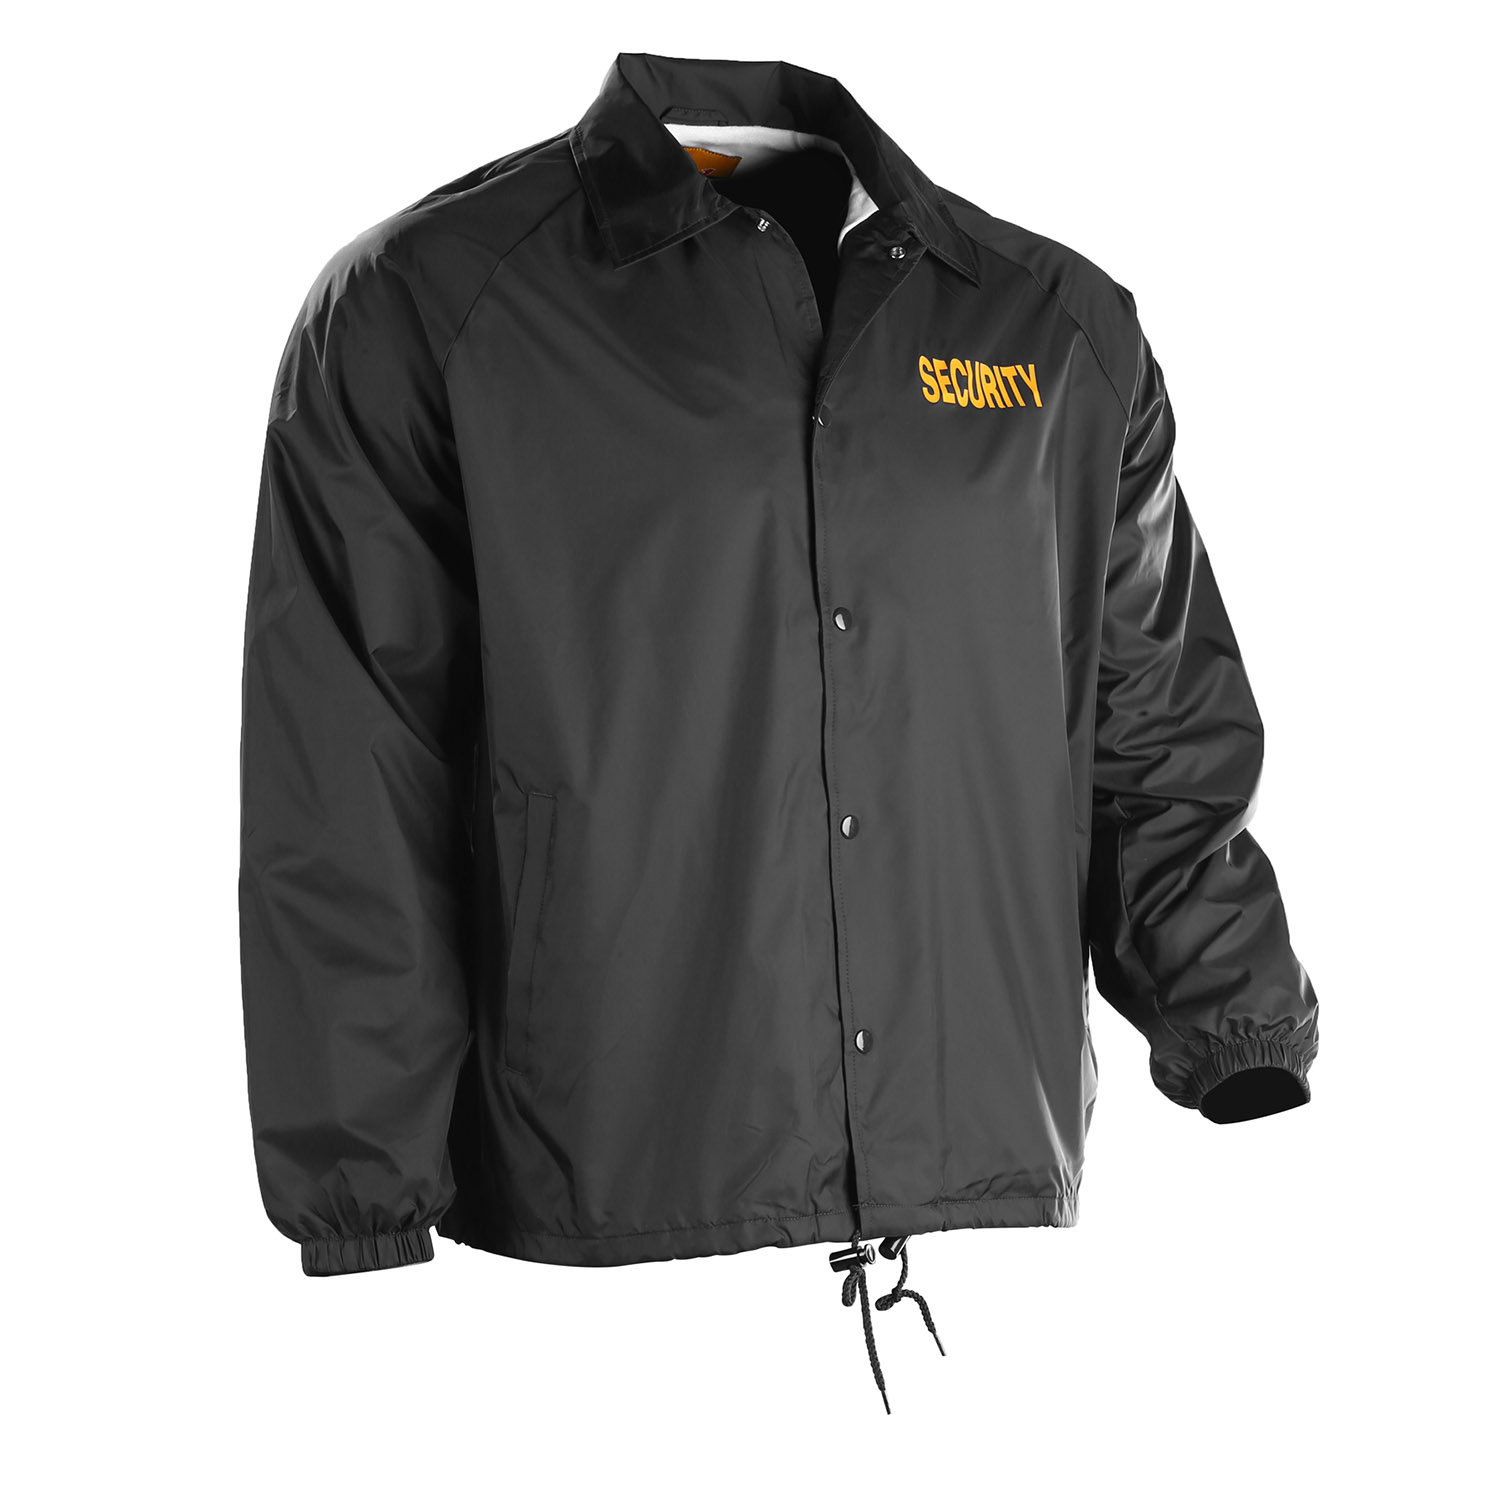 SOLAR-1 Windbreaker with Security Logo